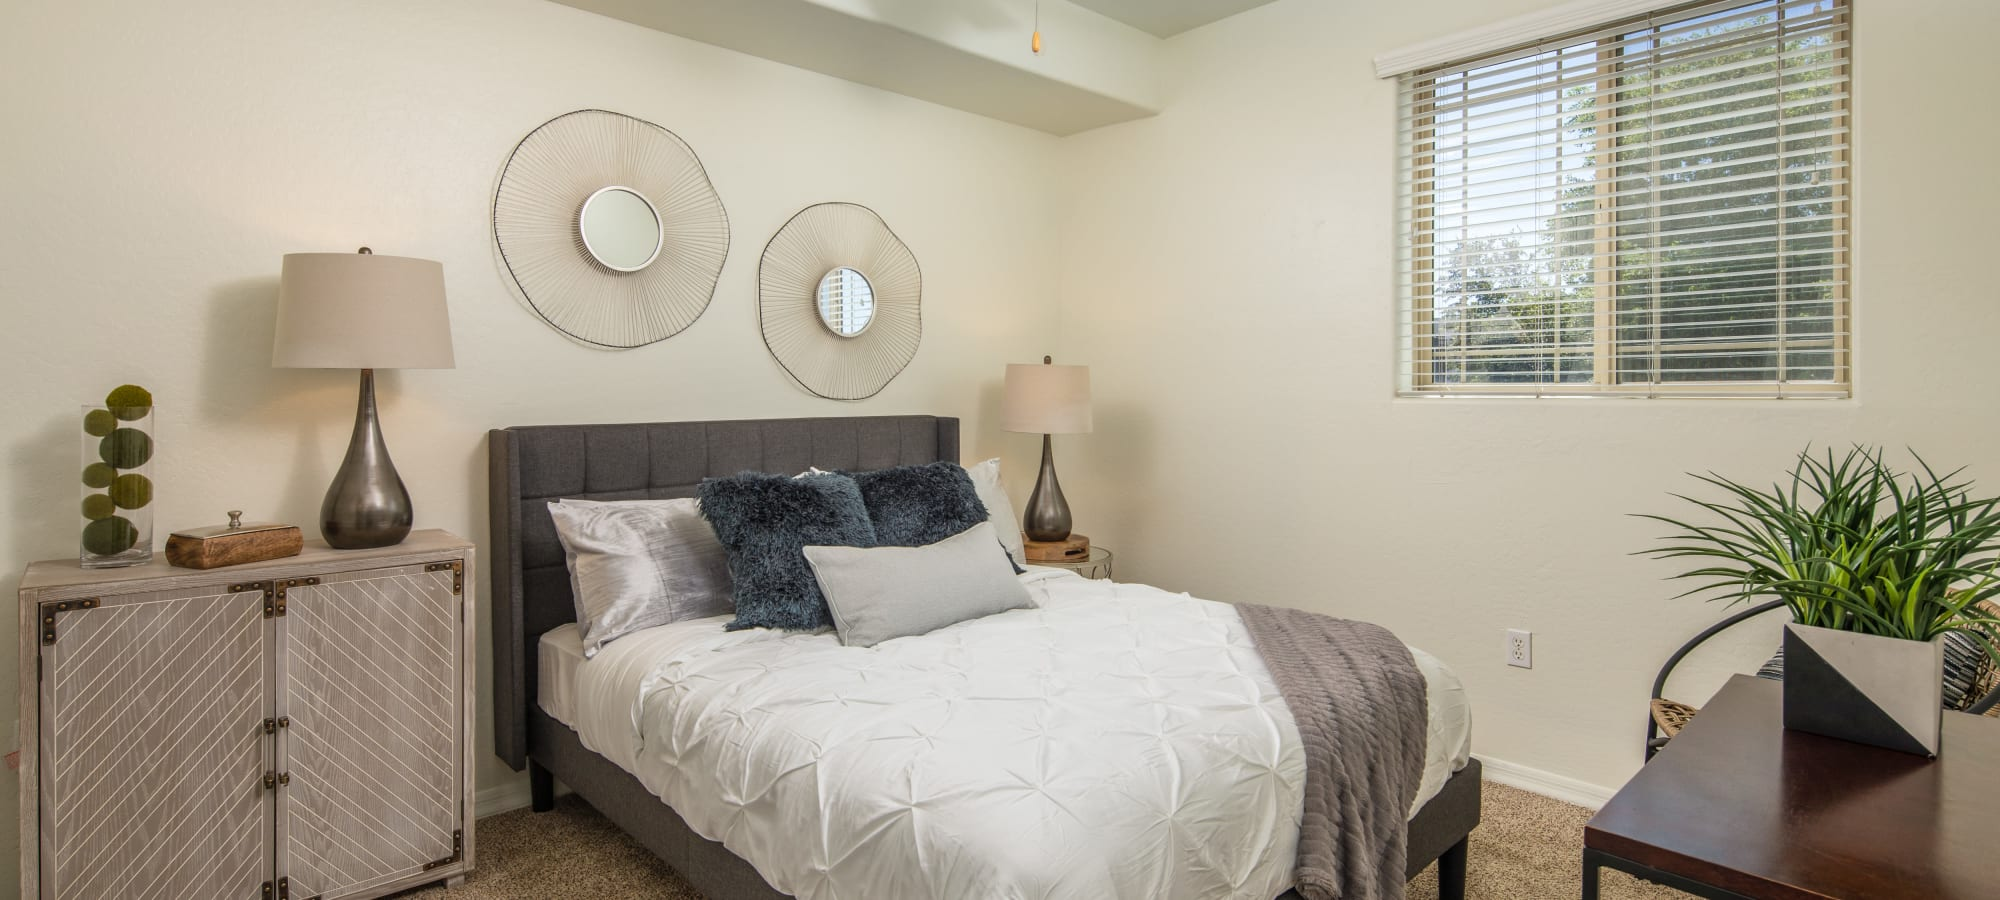 White bedroom at The Fleetwood in Tempe, Arizona